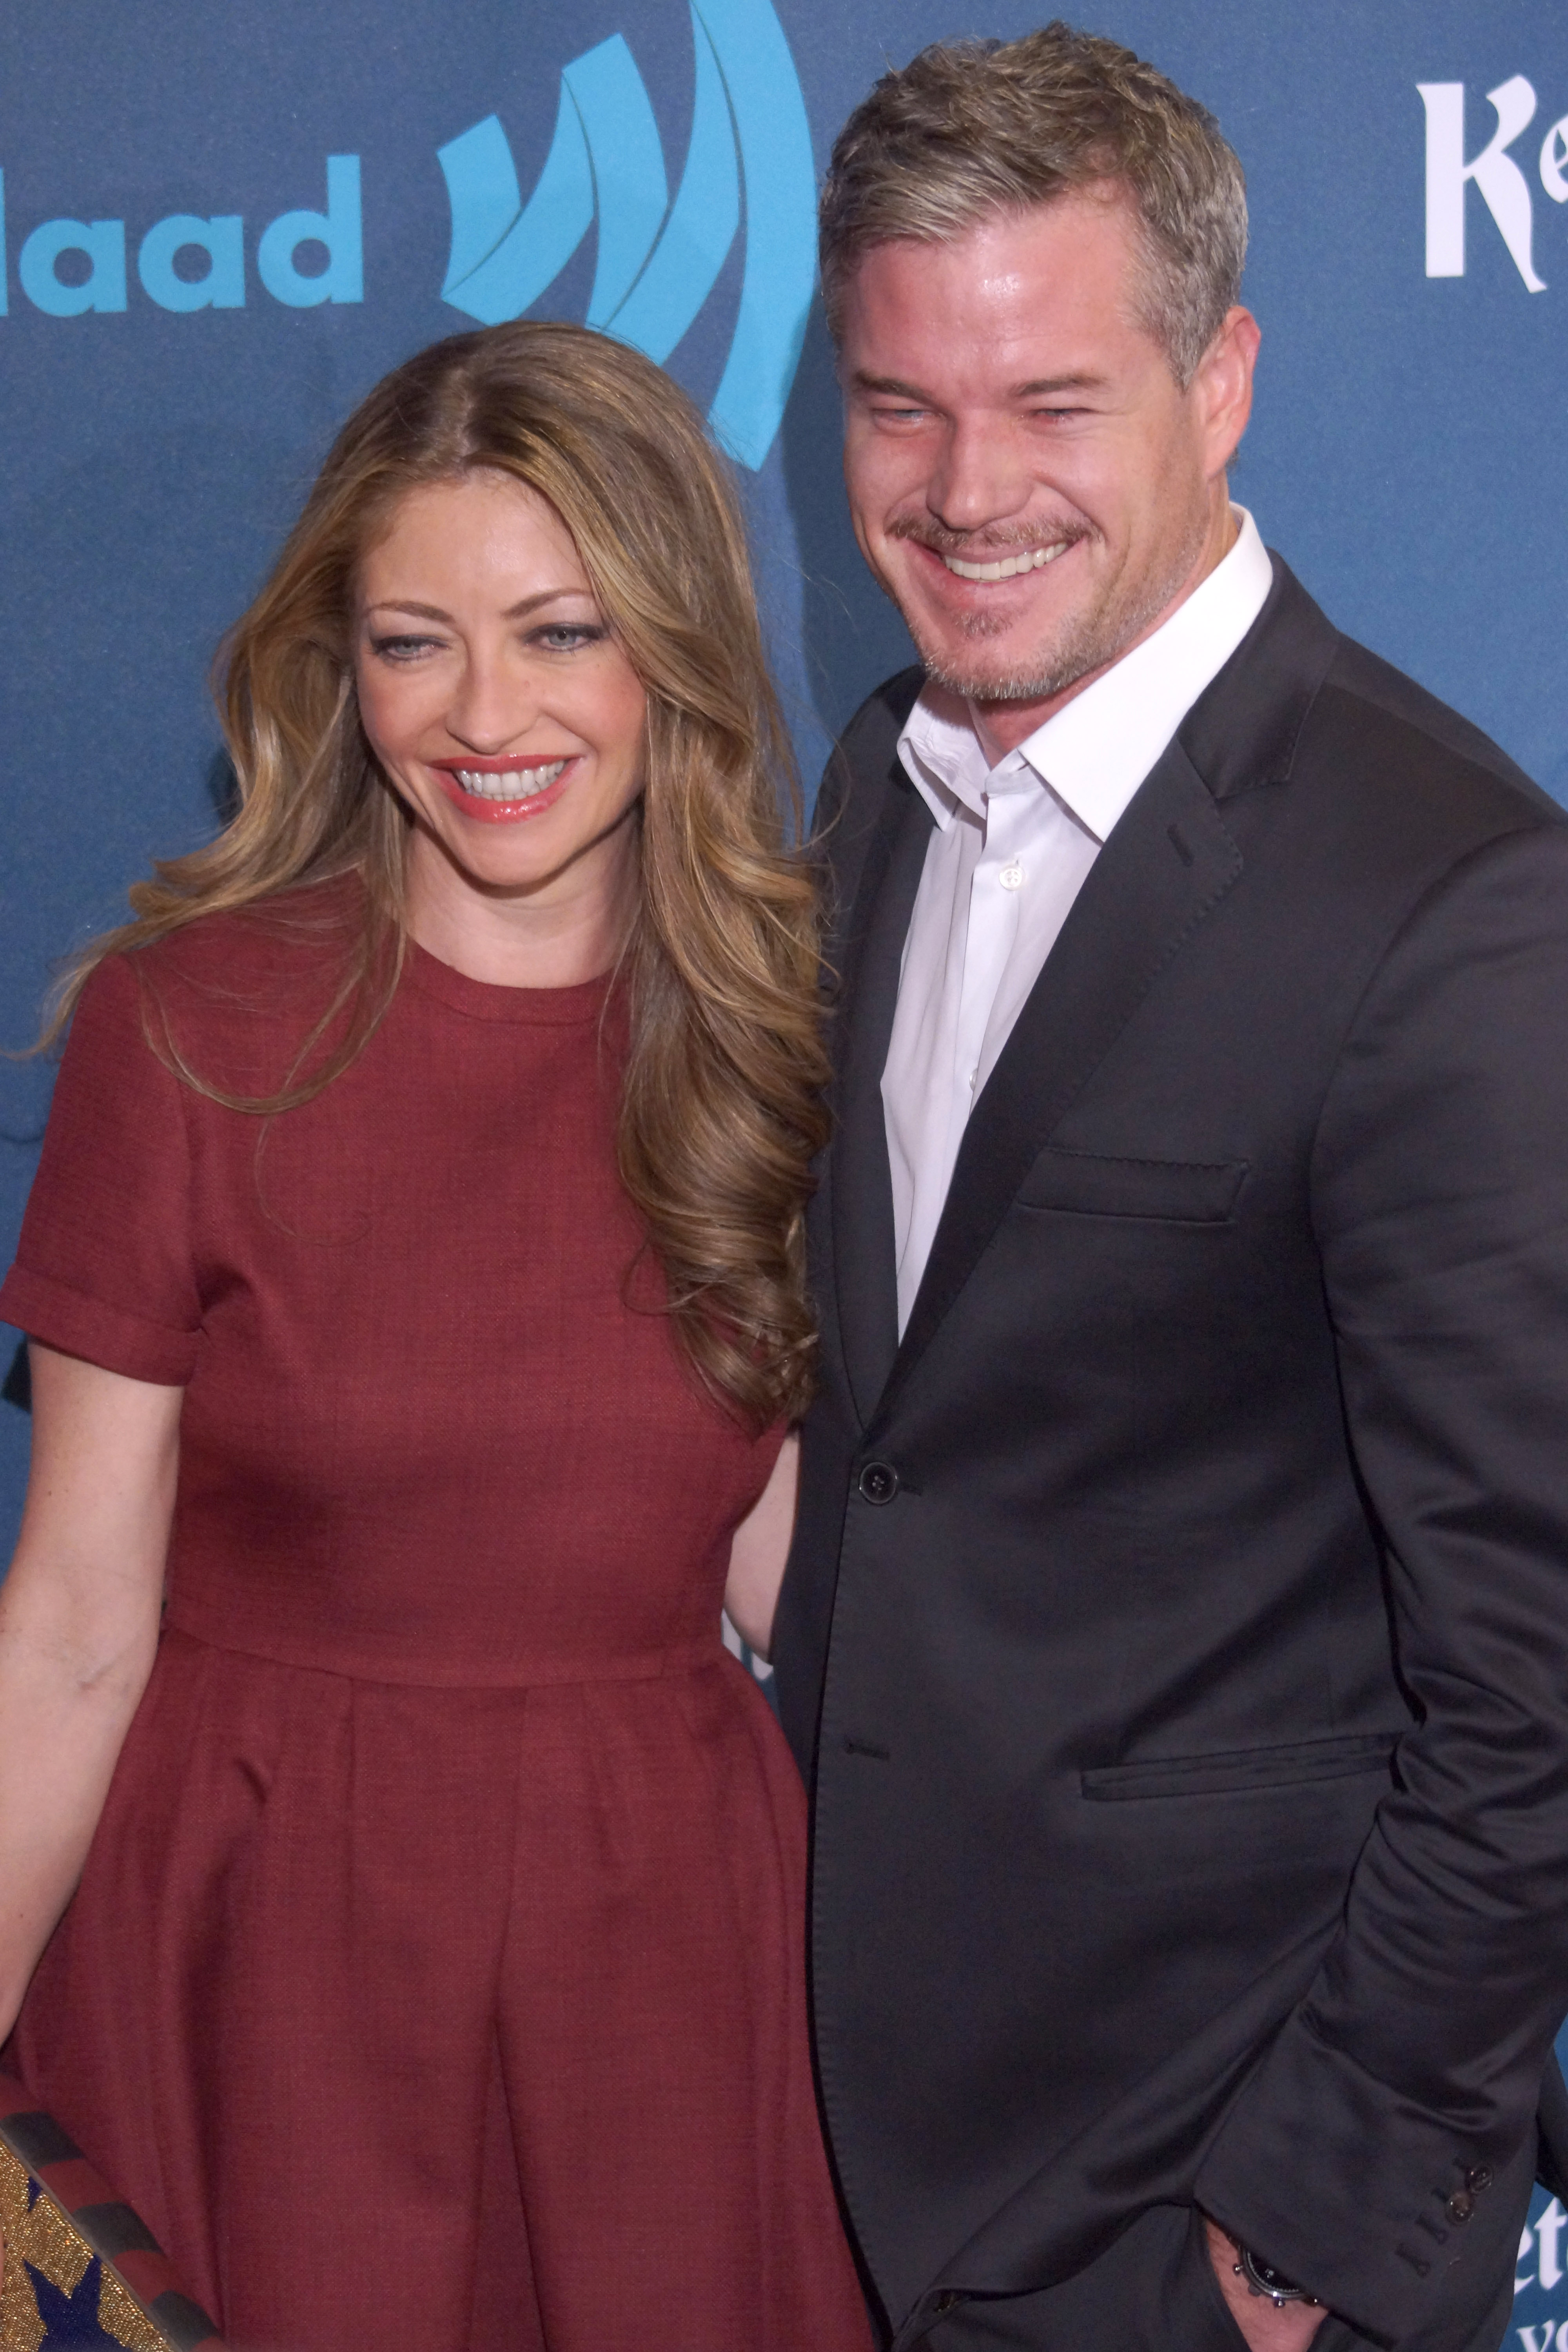 http://outqnews.files.wordpress.com/2013/04/ericdane.jpg